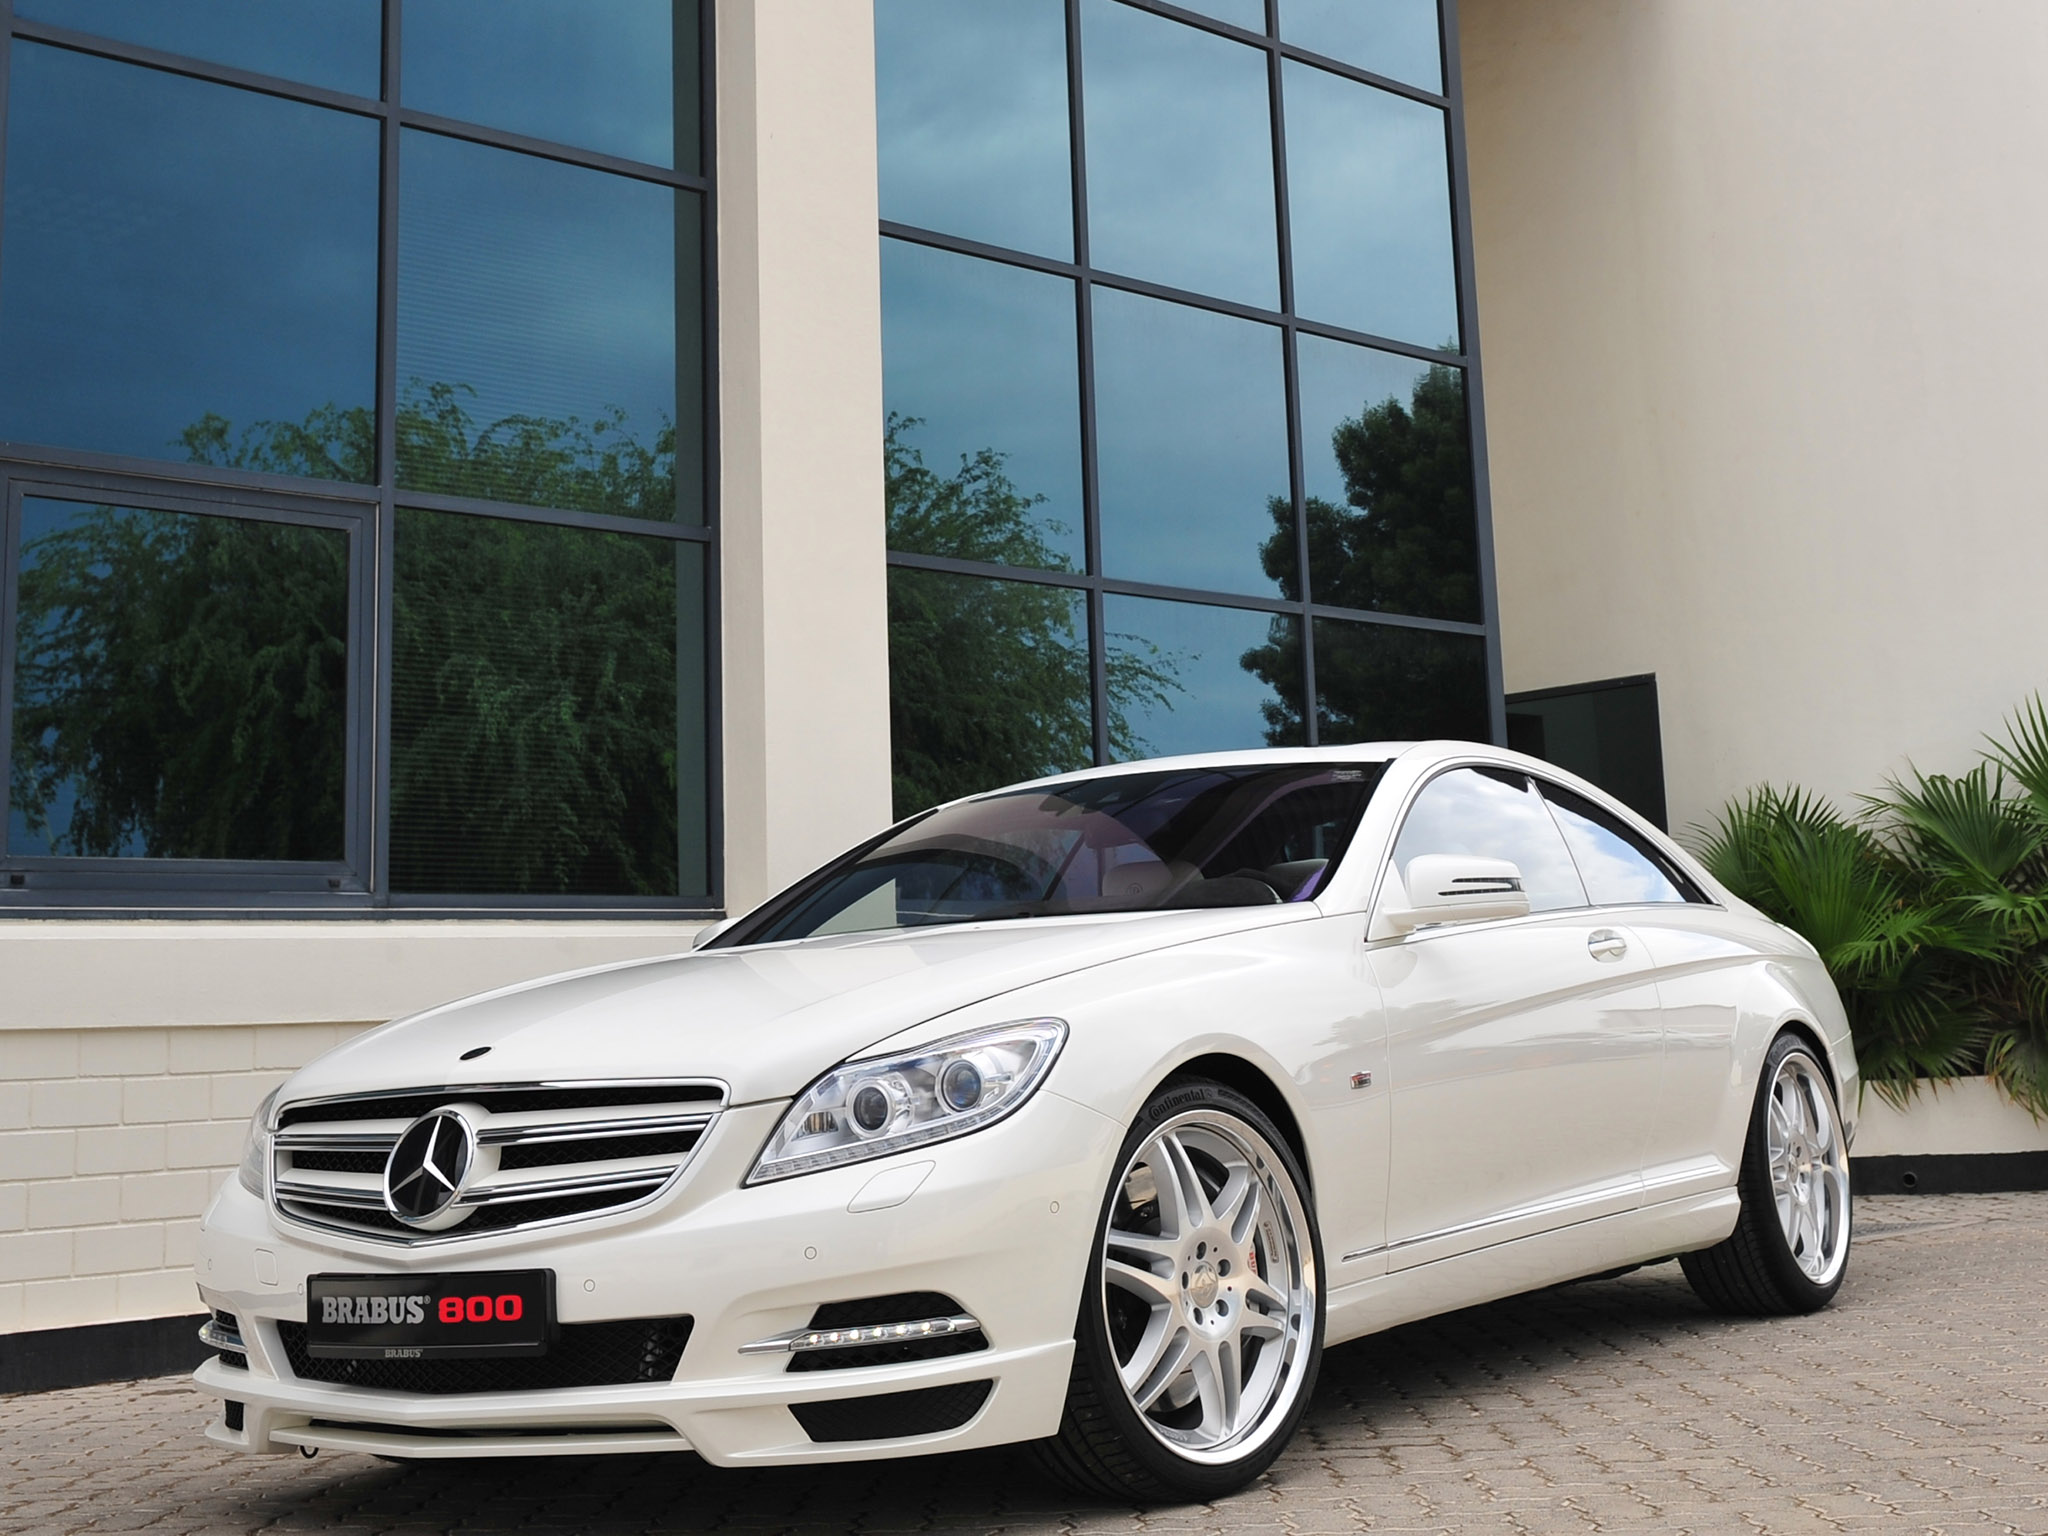 2011 Brabus Mercedes CL800 Coupe